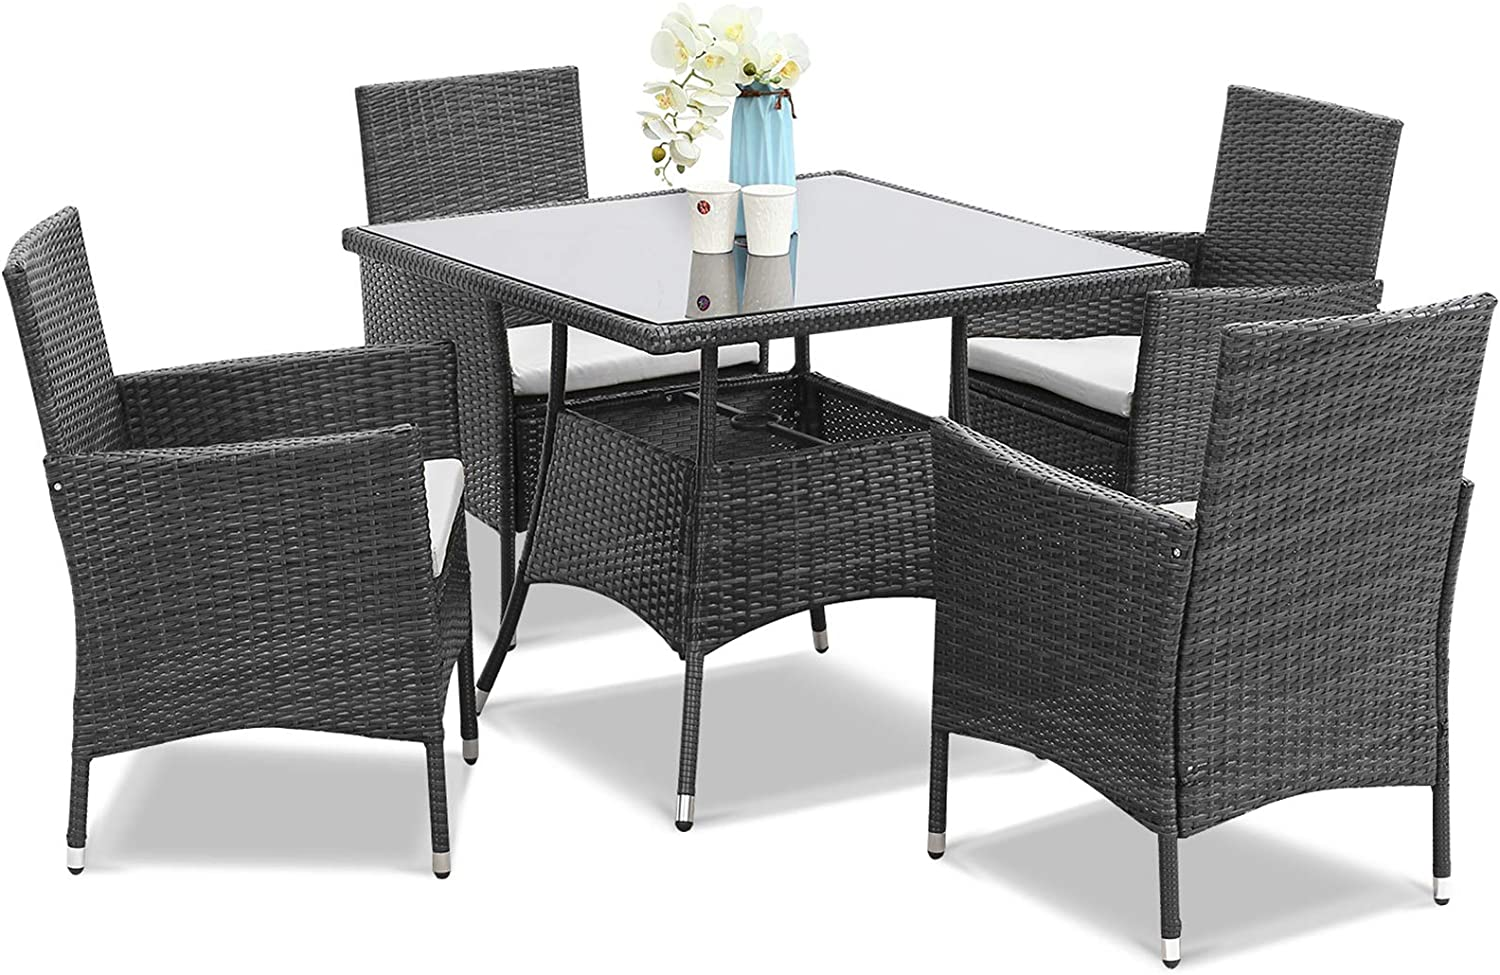 OFFicial shop Wisteria Lane Max 65% OFF Outdoor Furniture 5-Piece Patio Tabl Wicker Dining